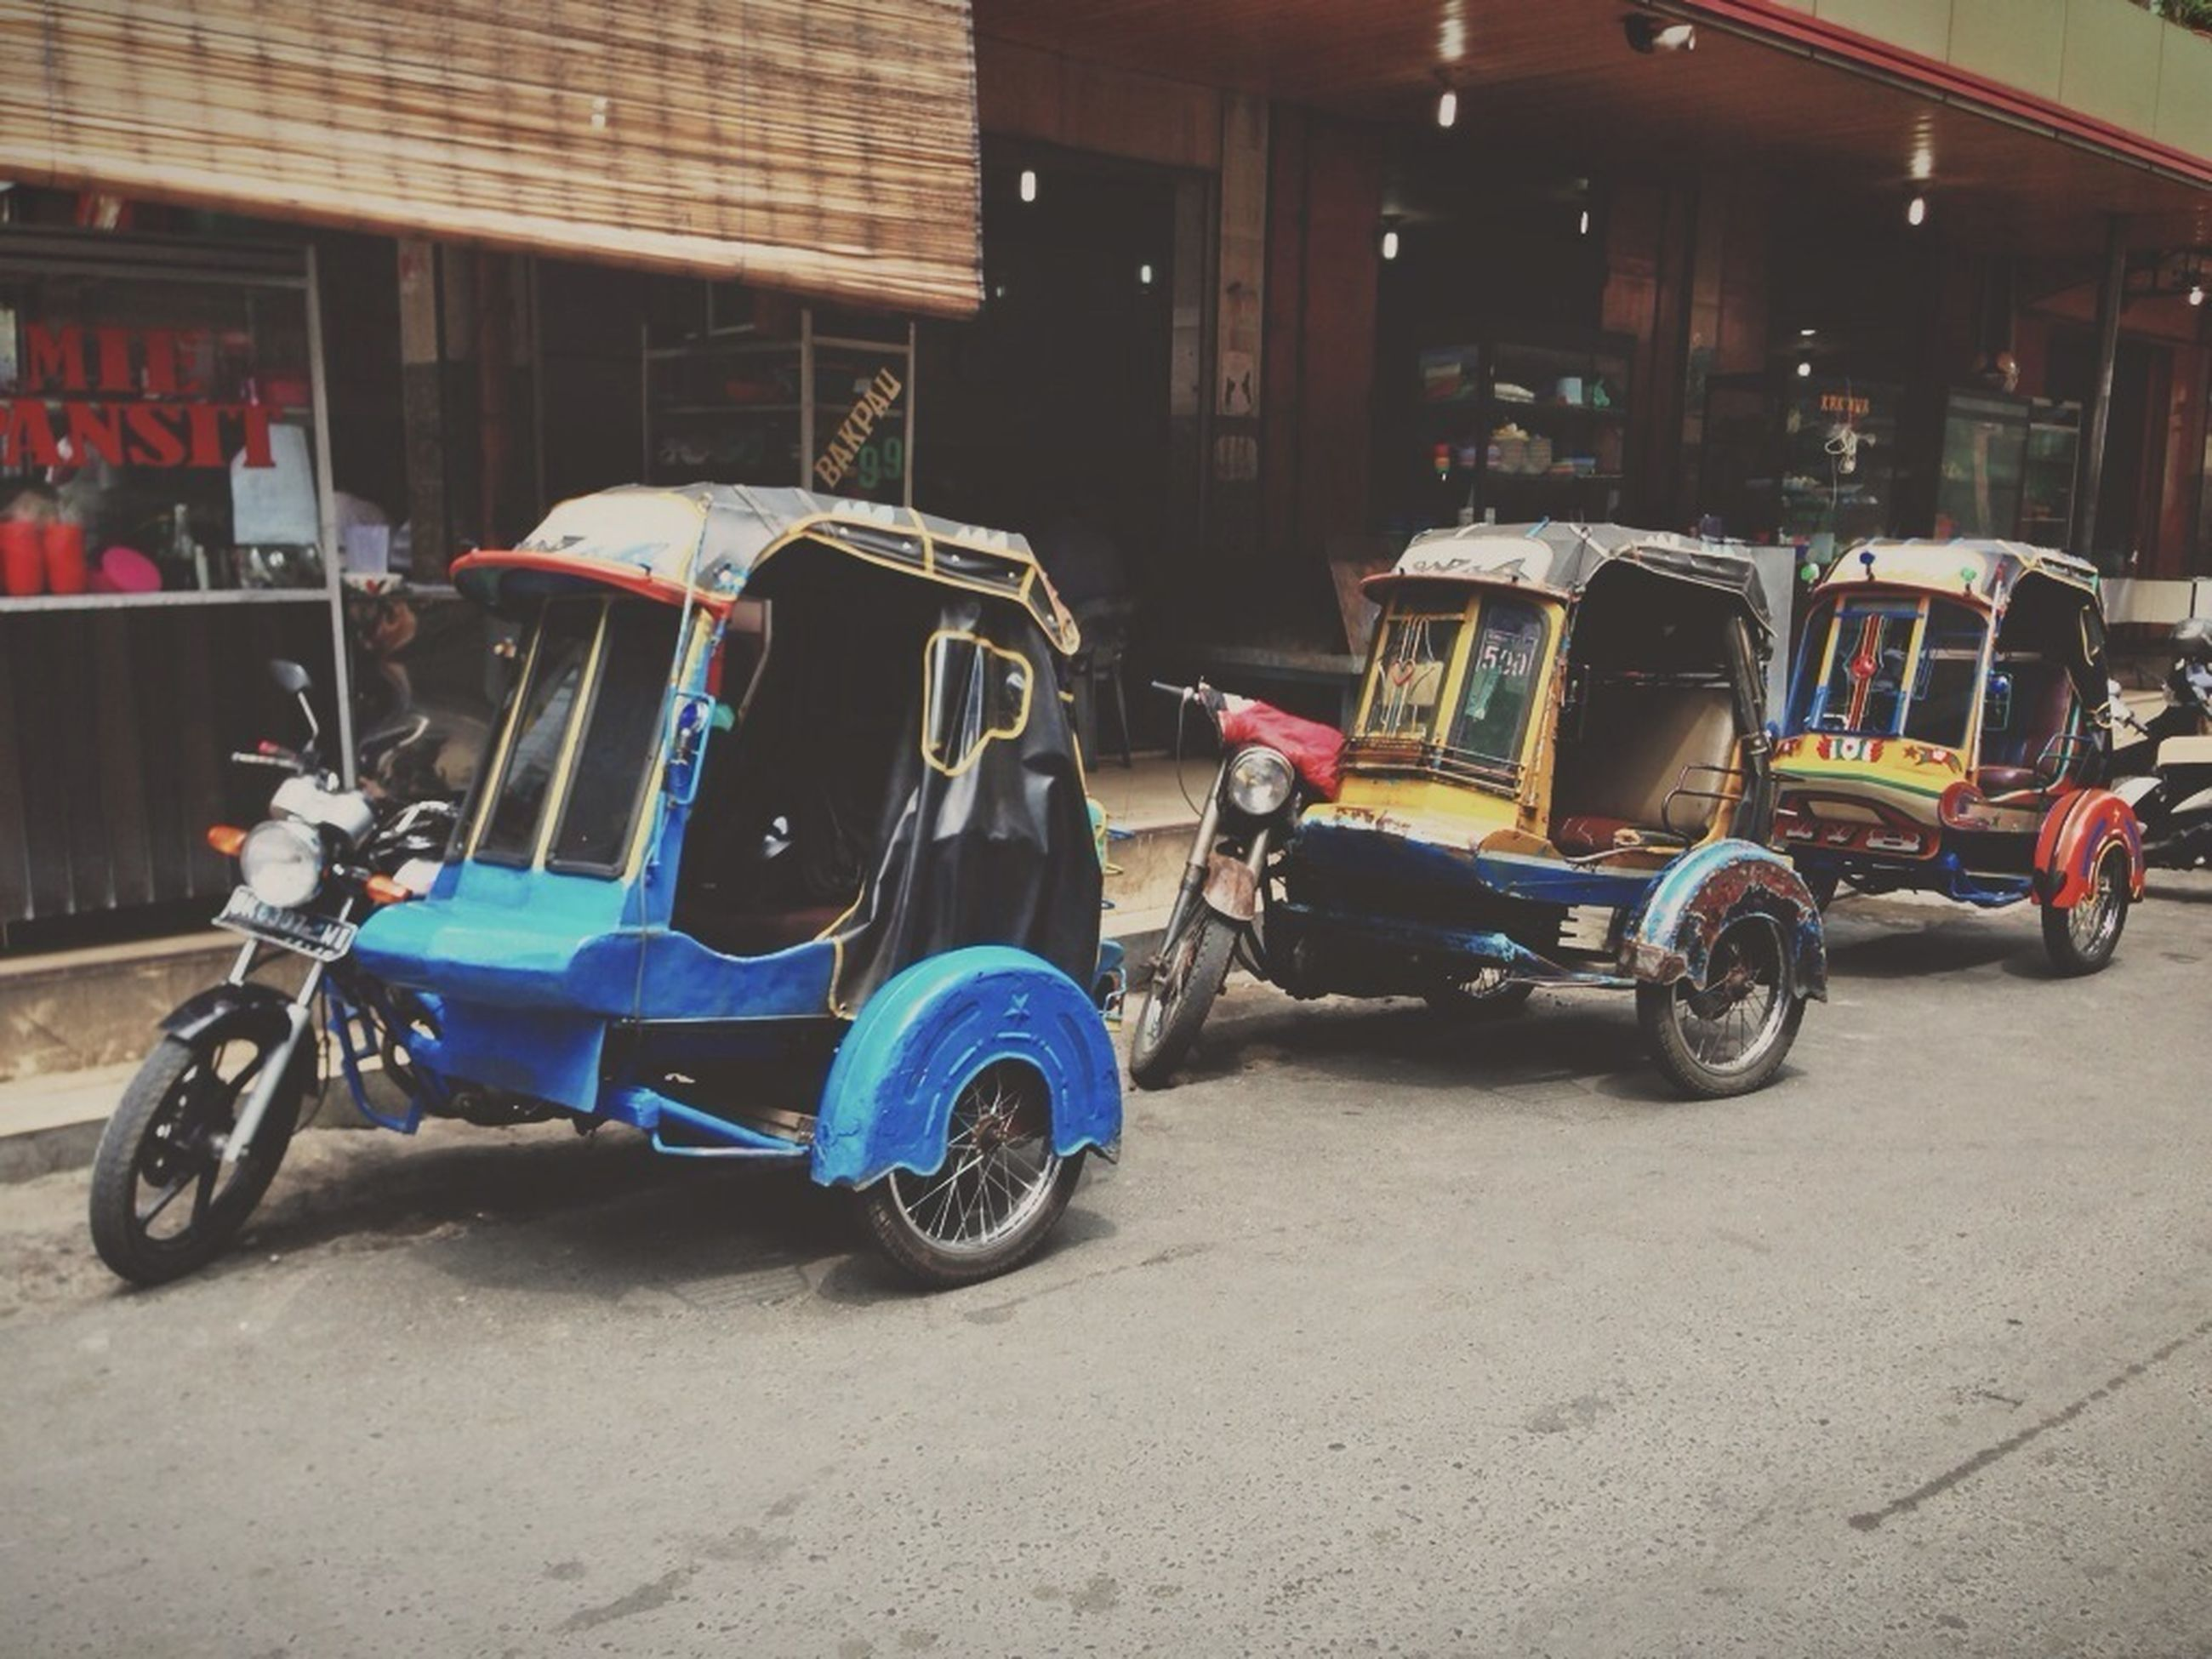 land vehicle, transportation, mode of transport, bicycle, parked, stationary, parking, architecture, building exterior, street, built structure, car, city, motorcycle, riding, travel, motor scooter, road, side view